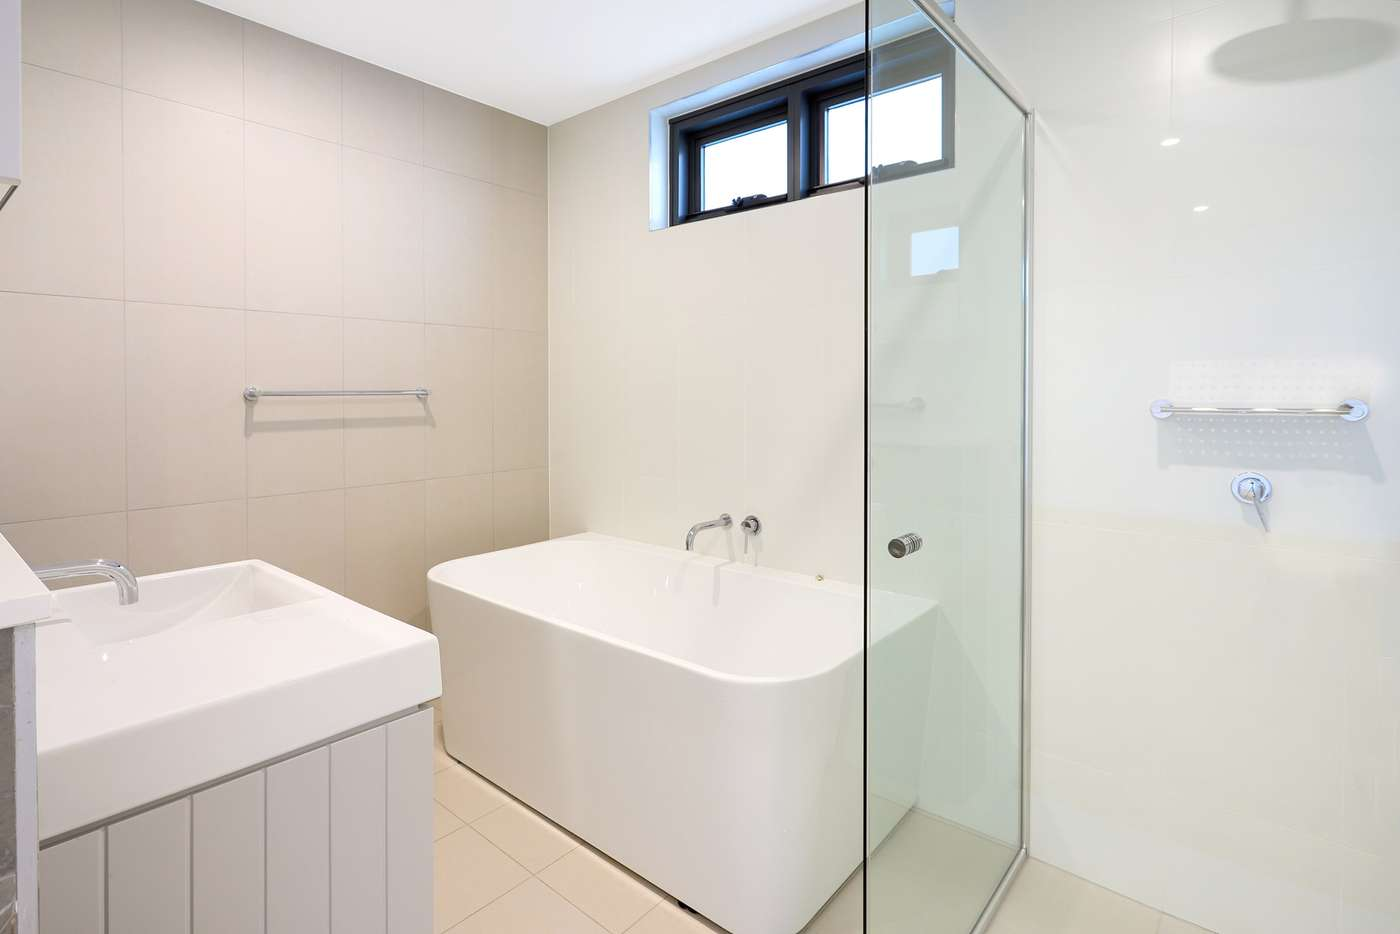 Sixth view of Homely apartment listing, D205/2 Gerbera Place, Kellyville NSW 2155